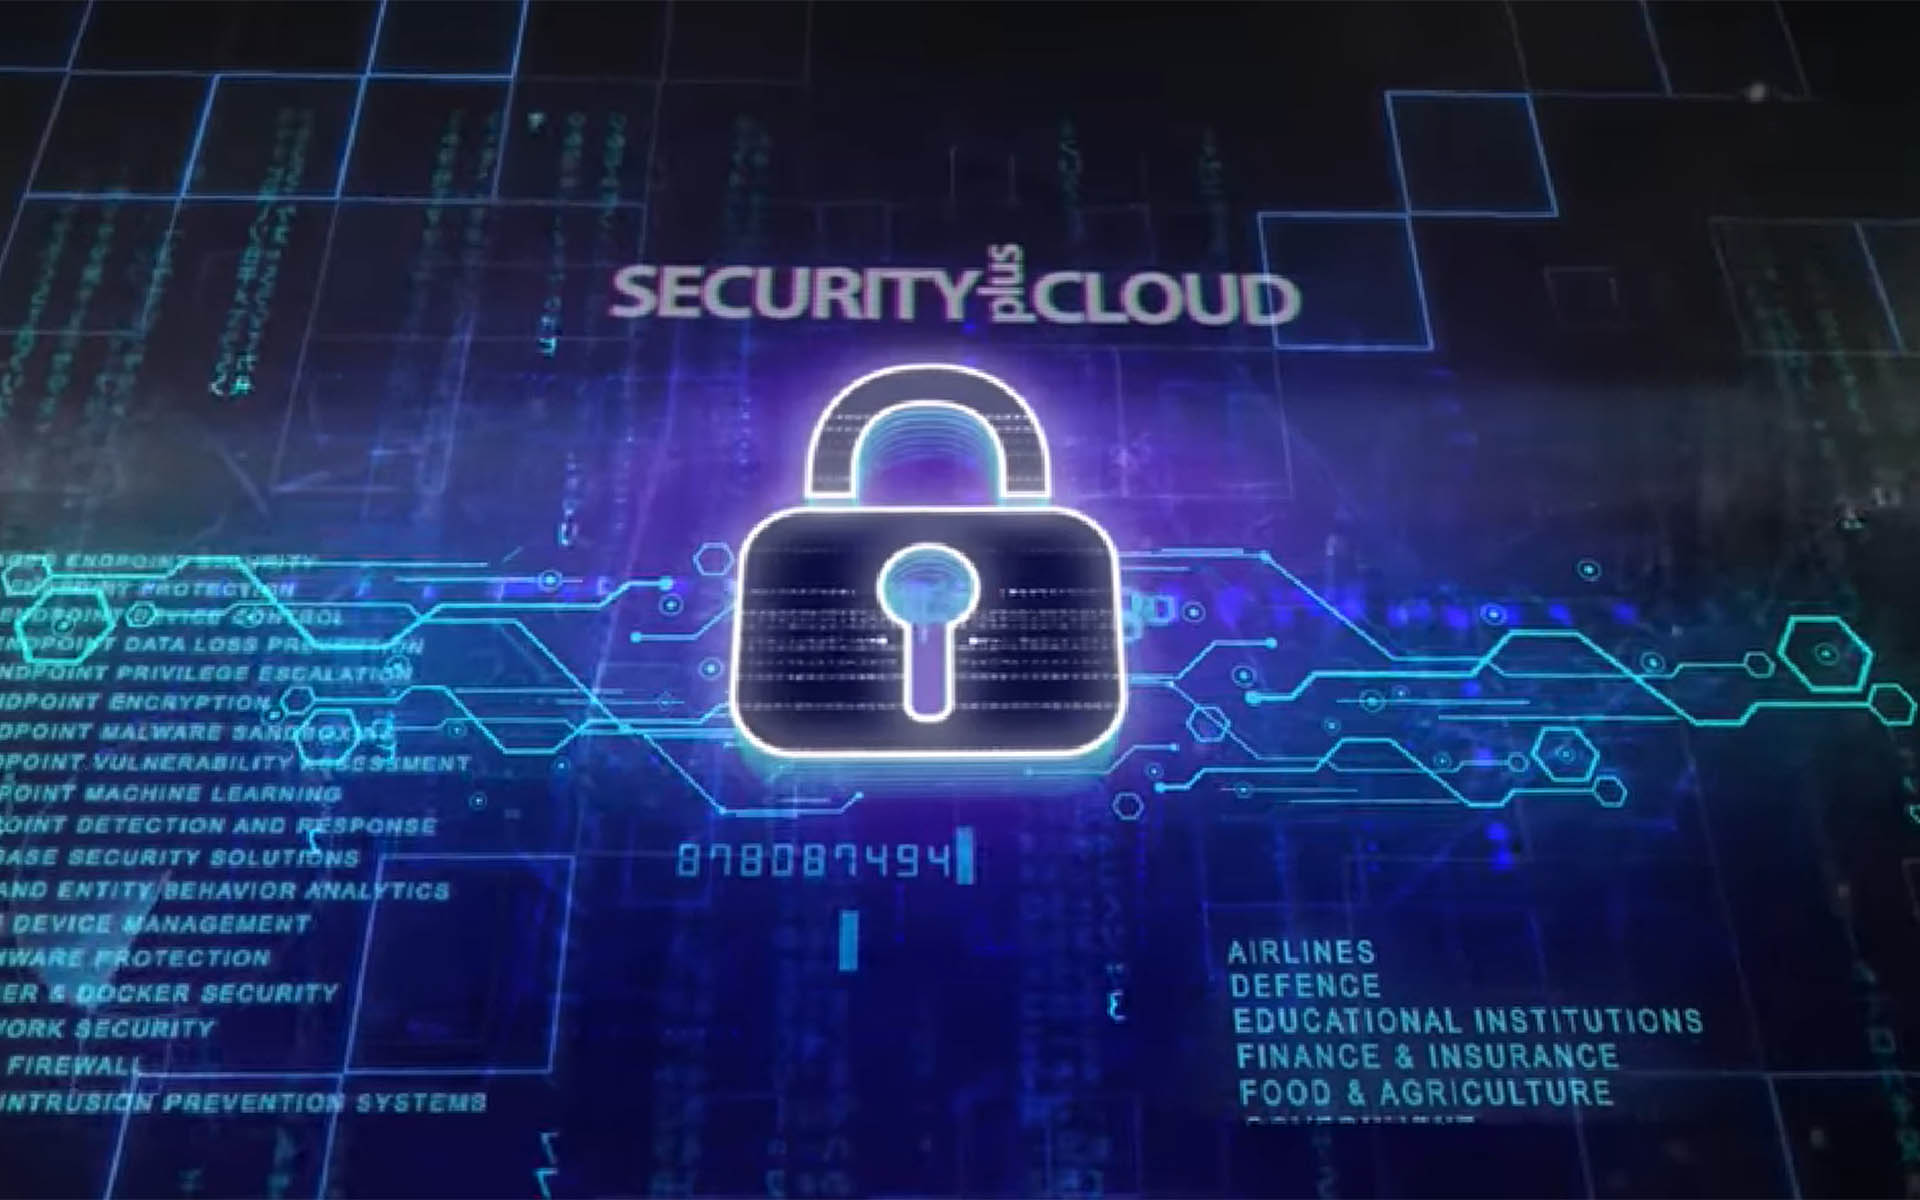 SecurityPlusCloud Rocks Cyber Security Industry With Announcement of World's First Cyber Security Based ICO